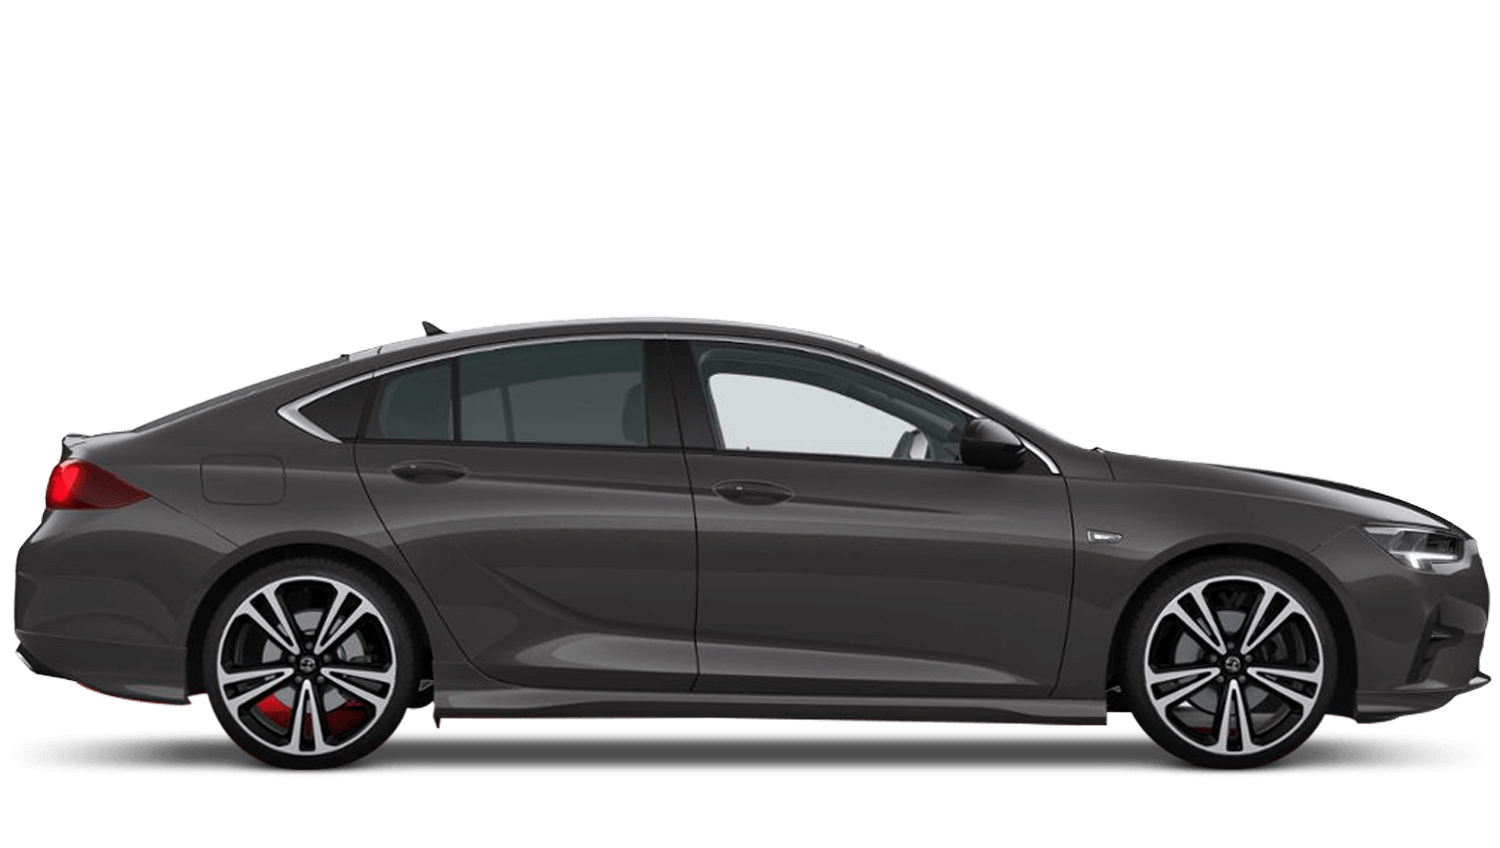 Carbon Brown (Metallic) New Vauxhall Insignia